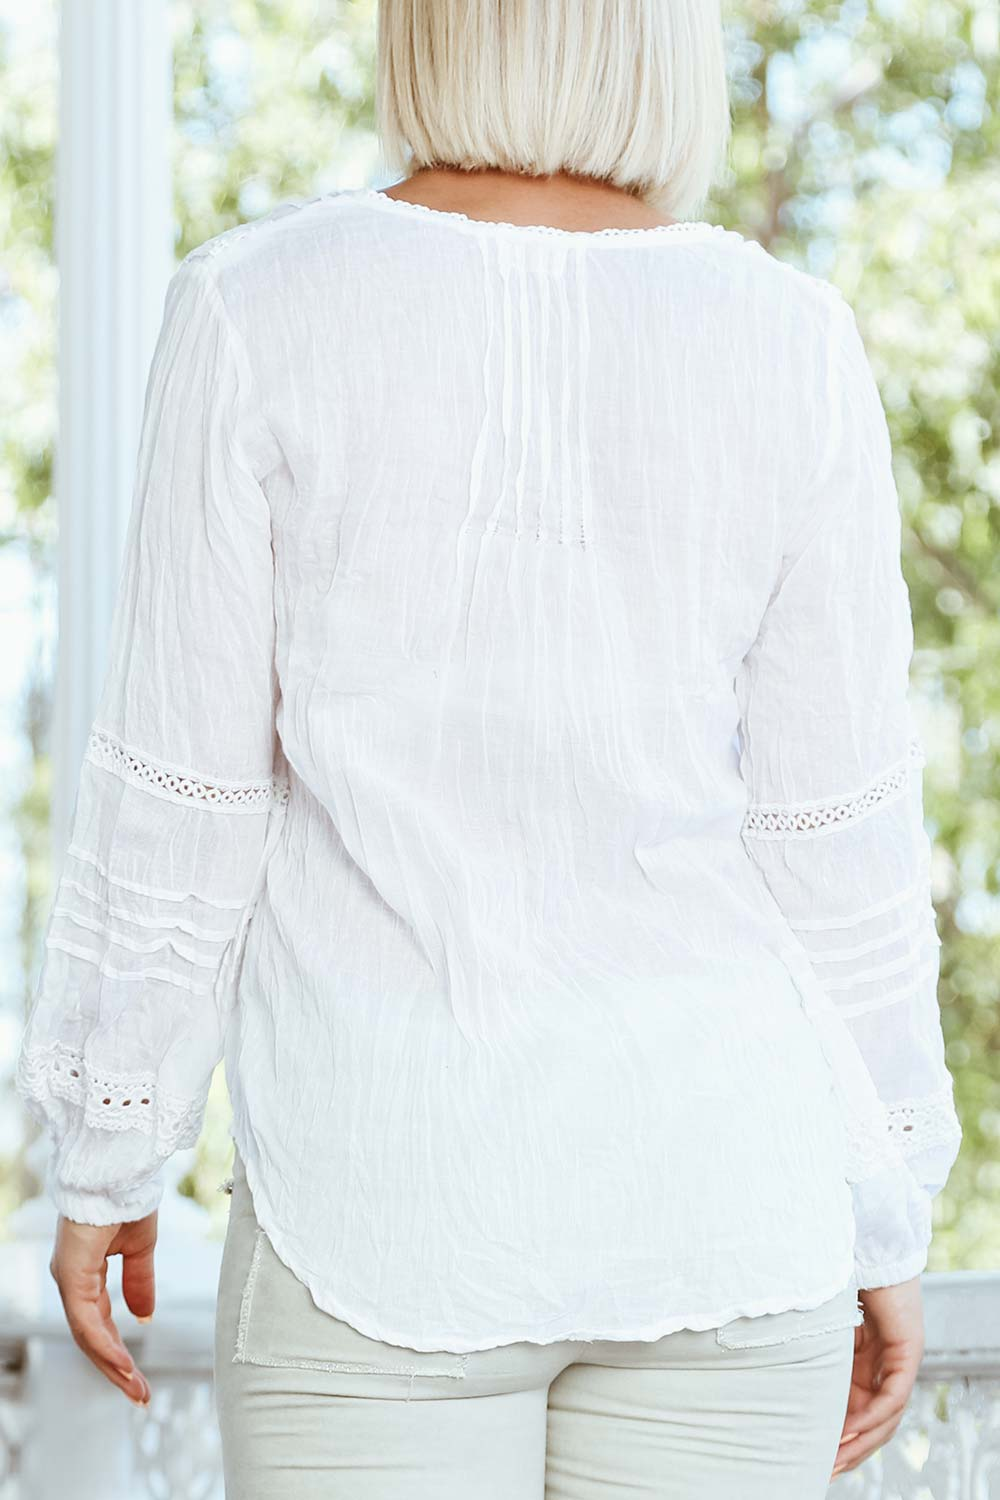 Amelia Shirt White - Kabana Shop